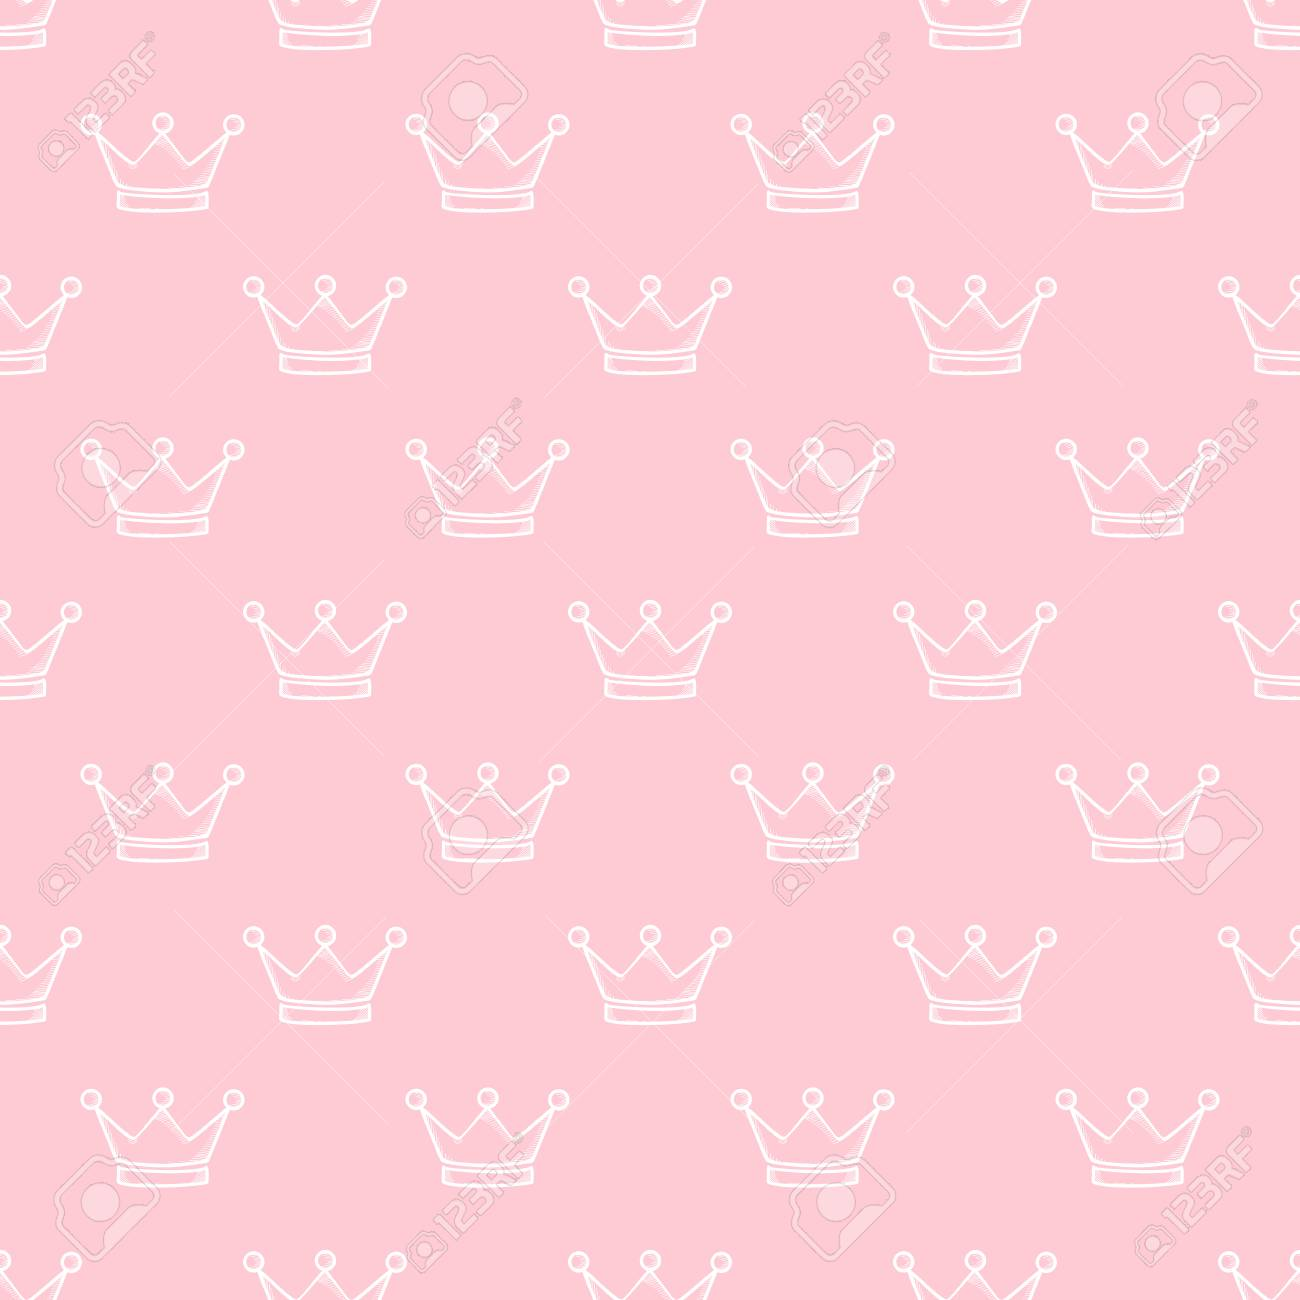 Hand Drawn Crown On Pink Background Seamless Pattern Royalty Free